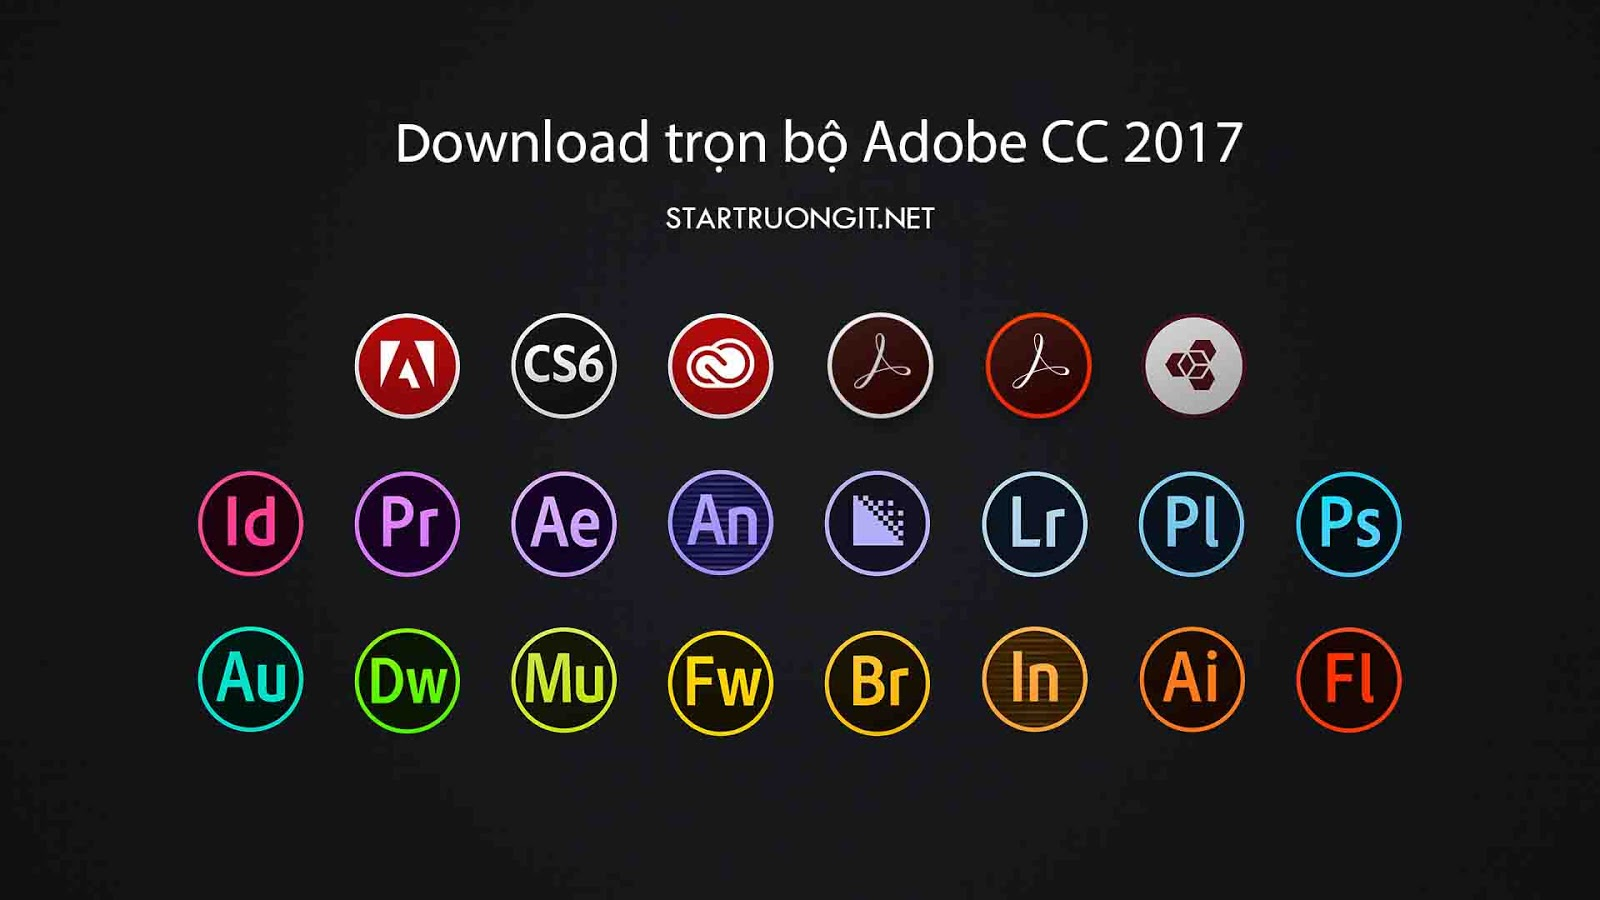 Download trọn bộ Adobe CC 2017